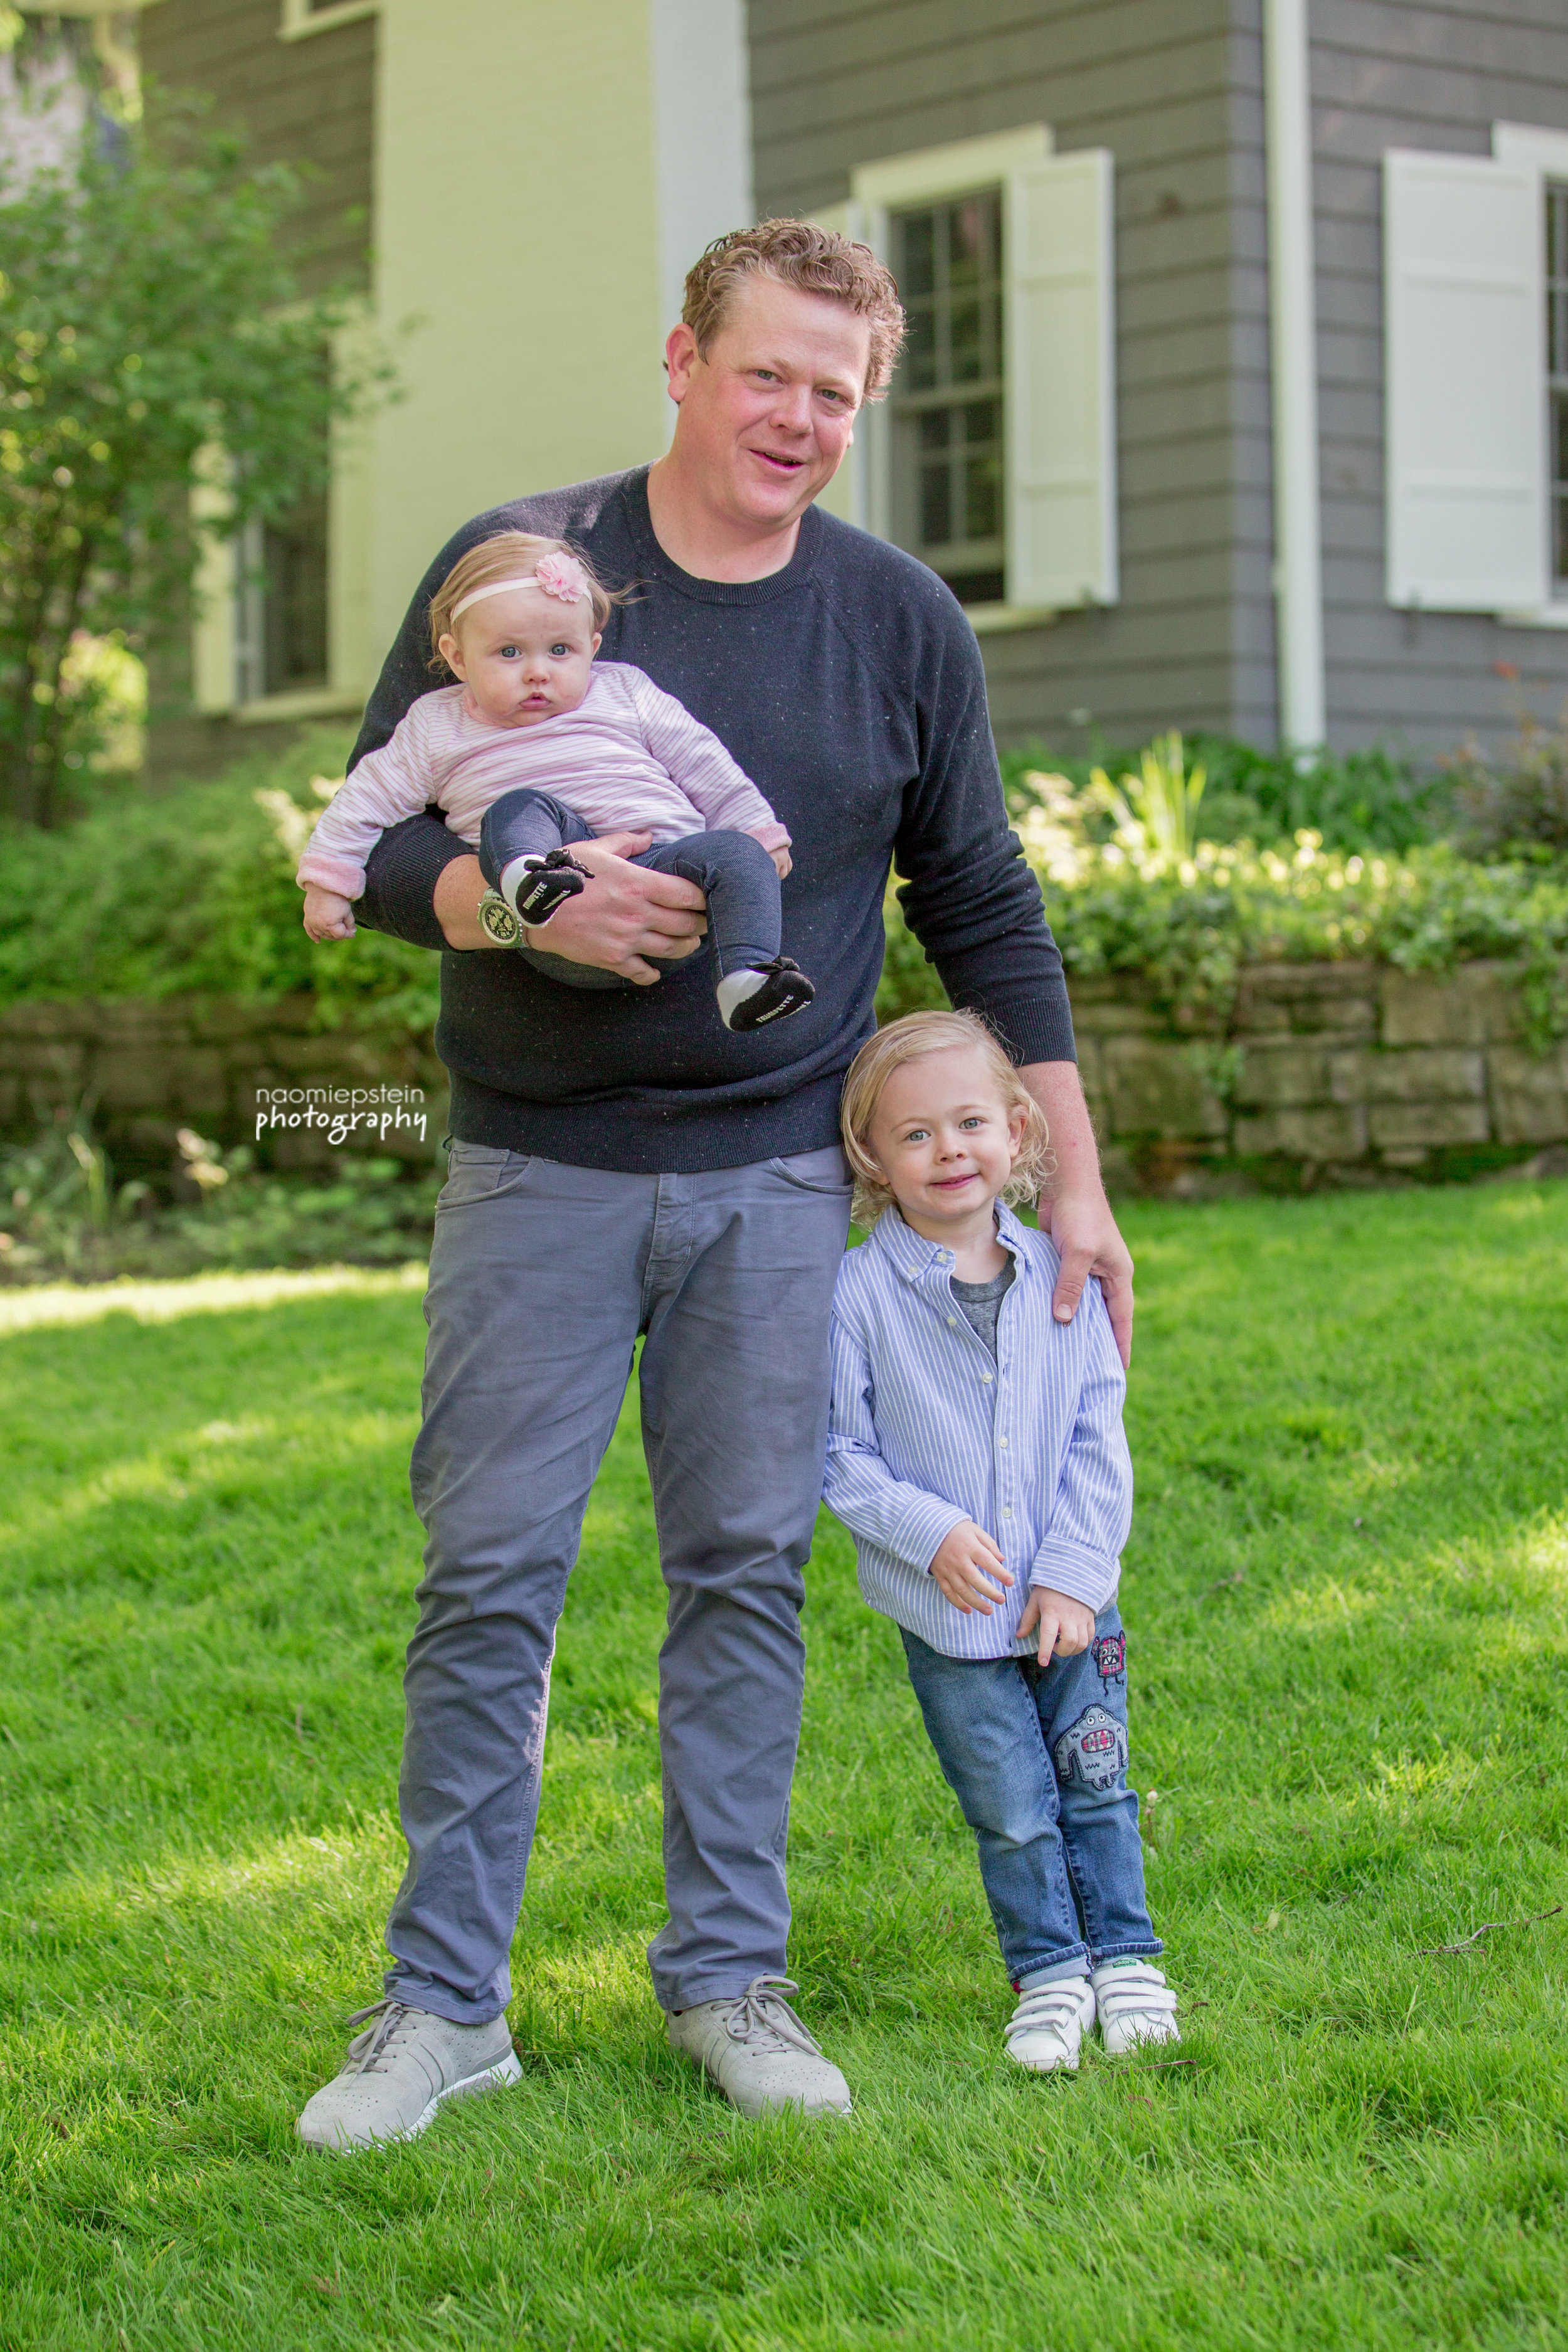 Highland_Park_Illinois_Family_Photographer_34.jpg